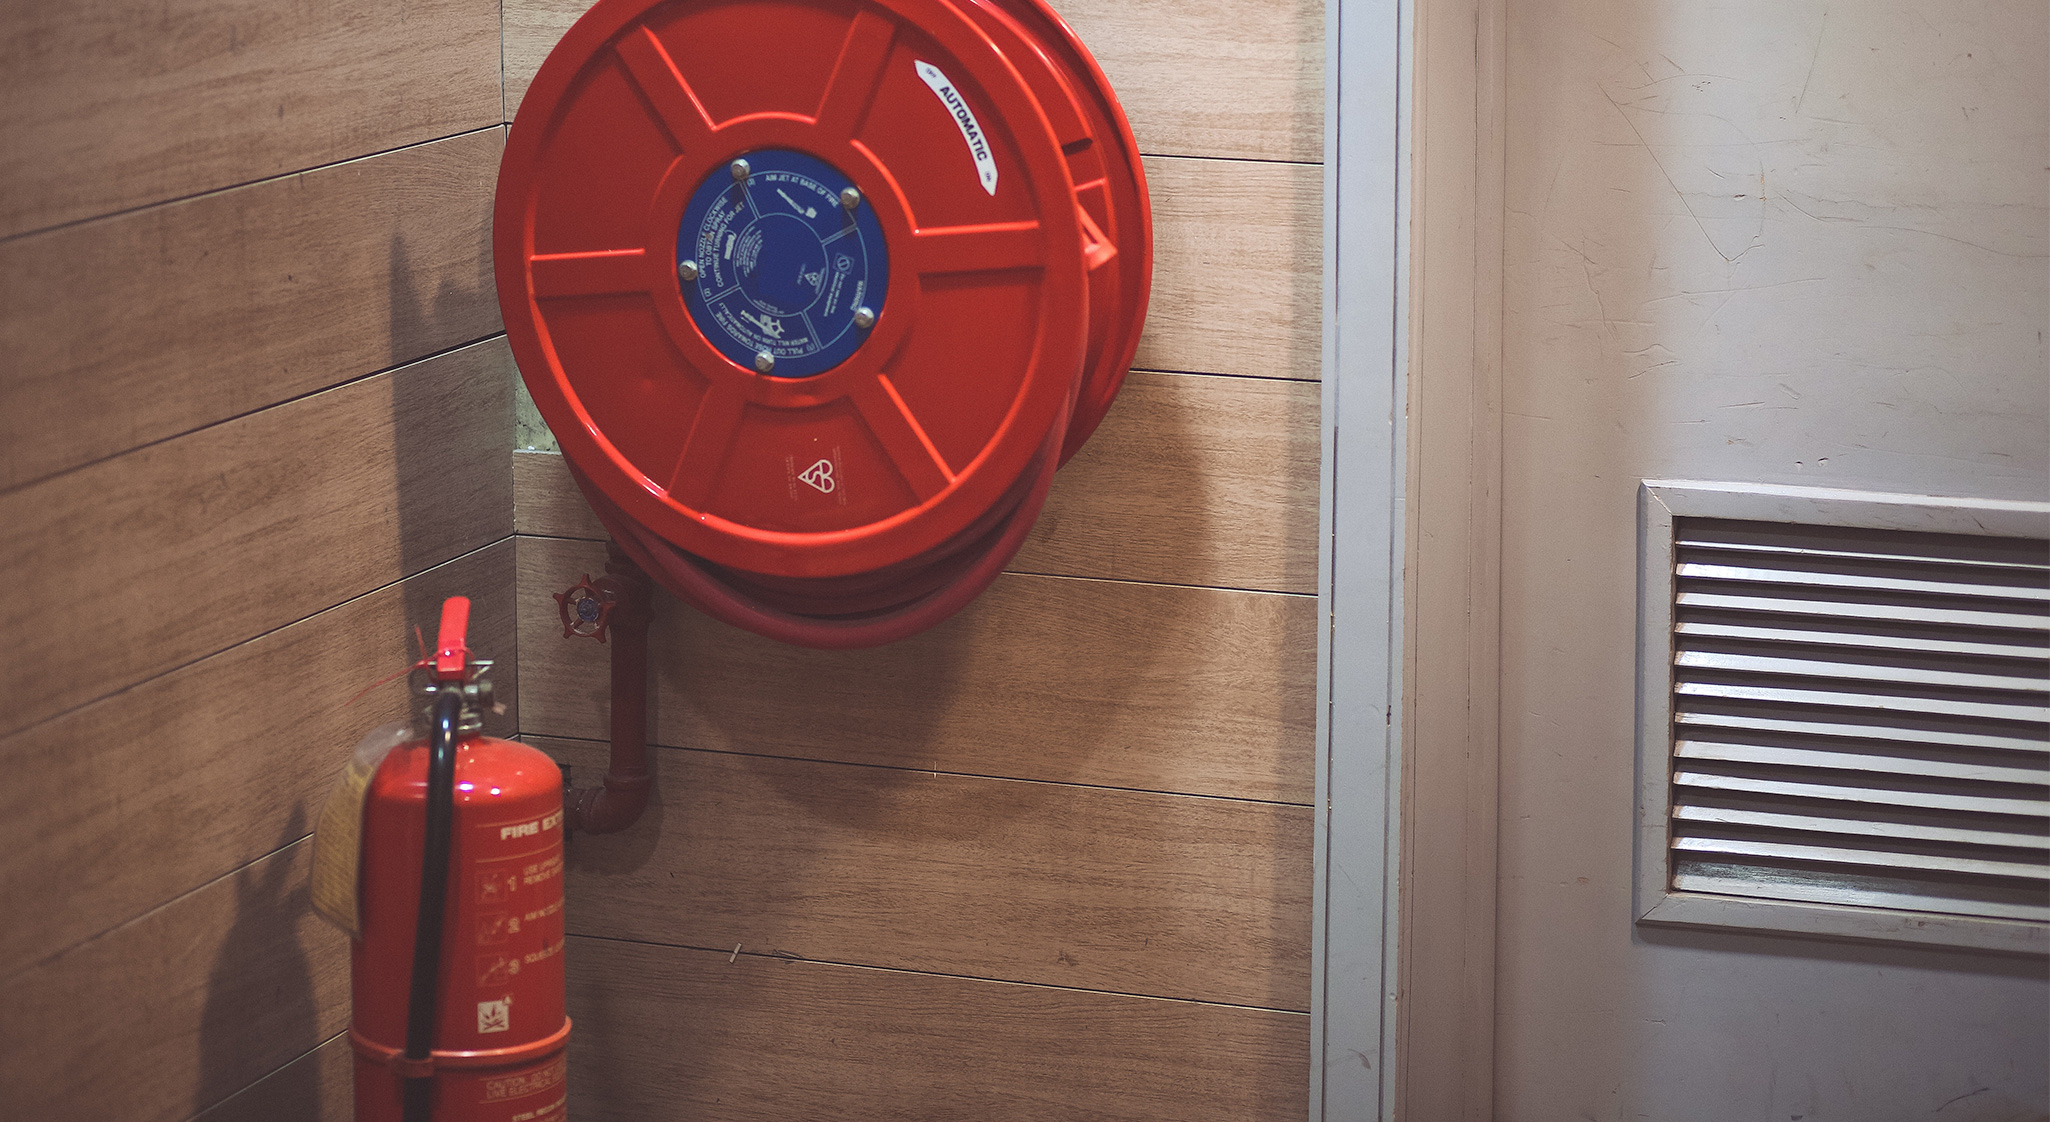 Fire Safety Training Perth: Fire Training, Services & Equipment WA